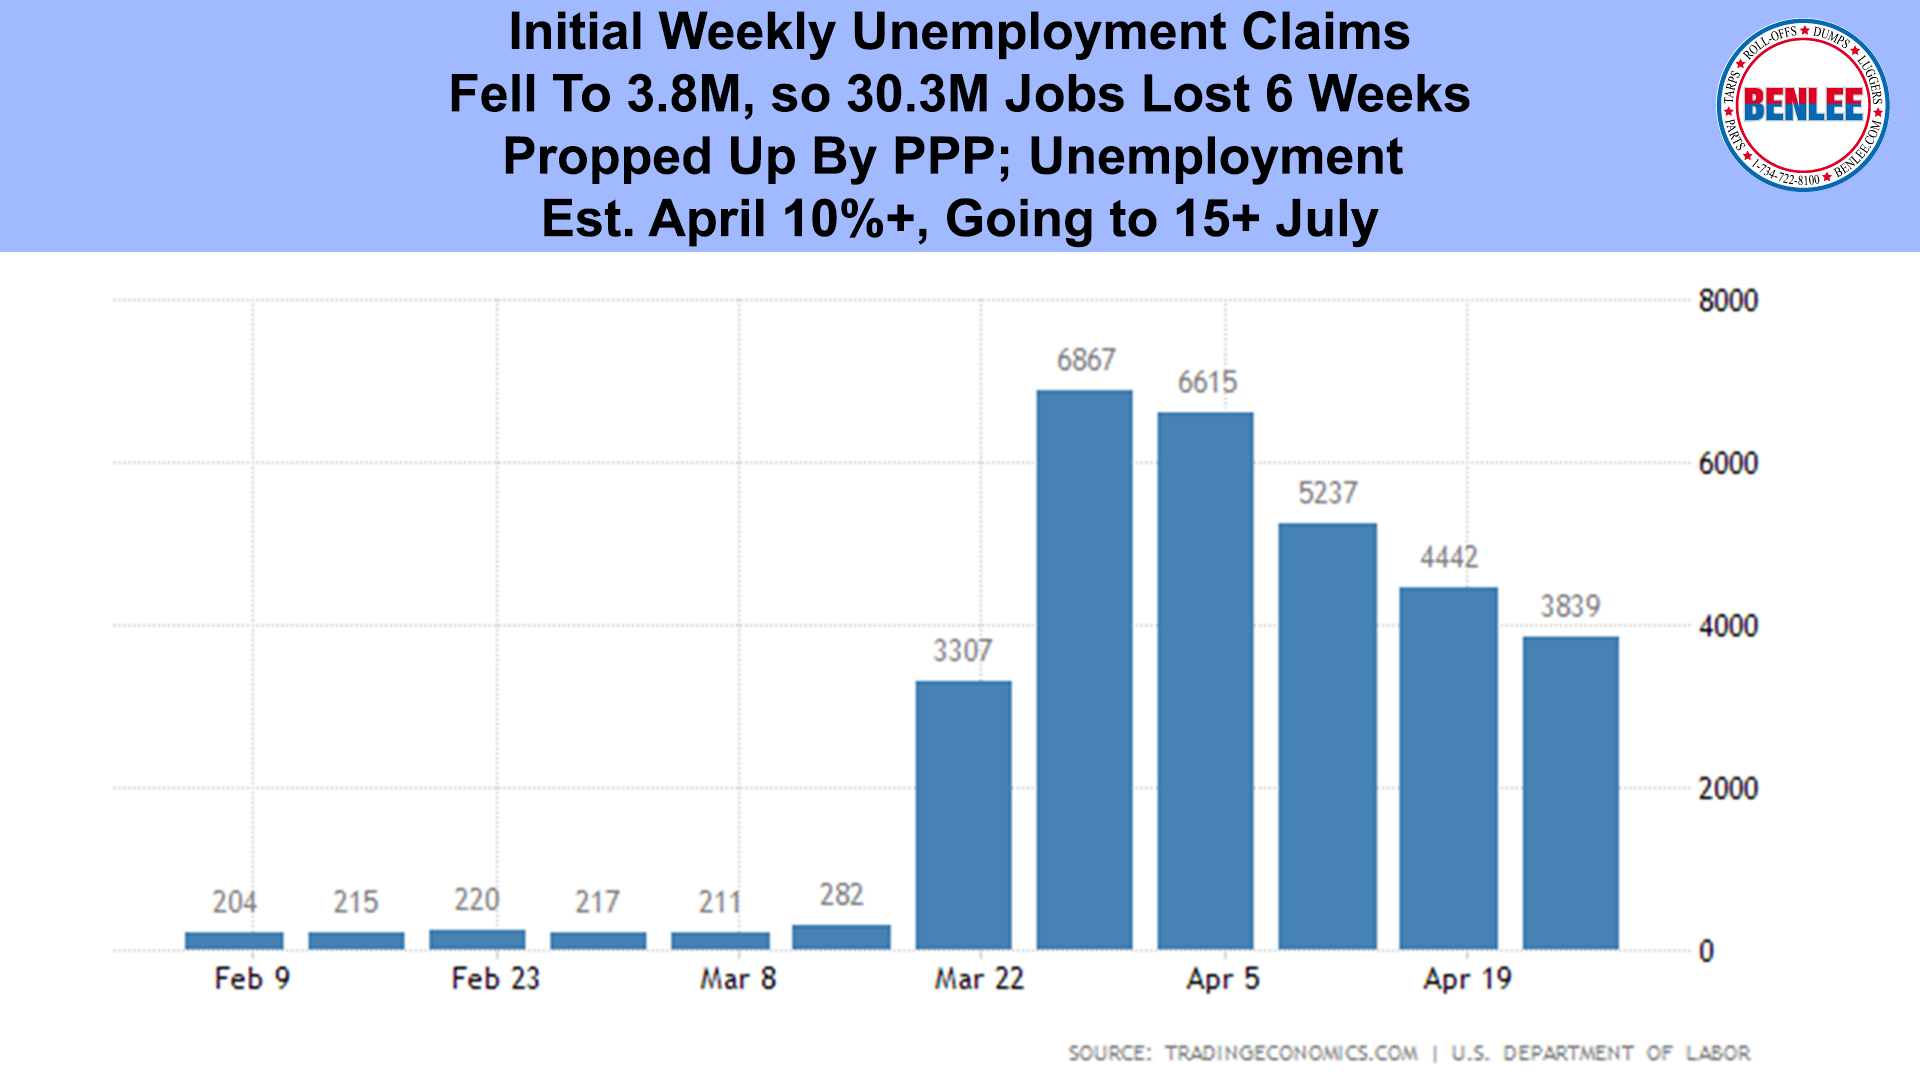 Initial Weekly Unemployment Claims